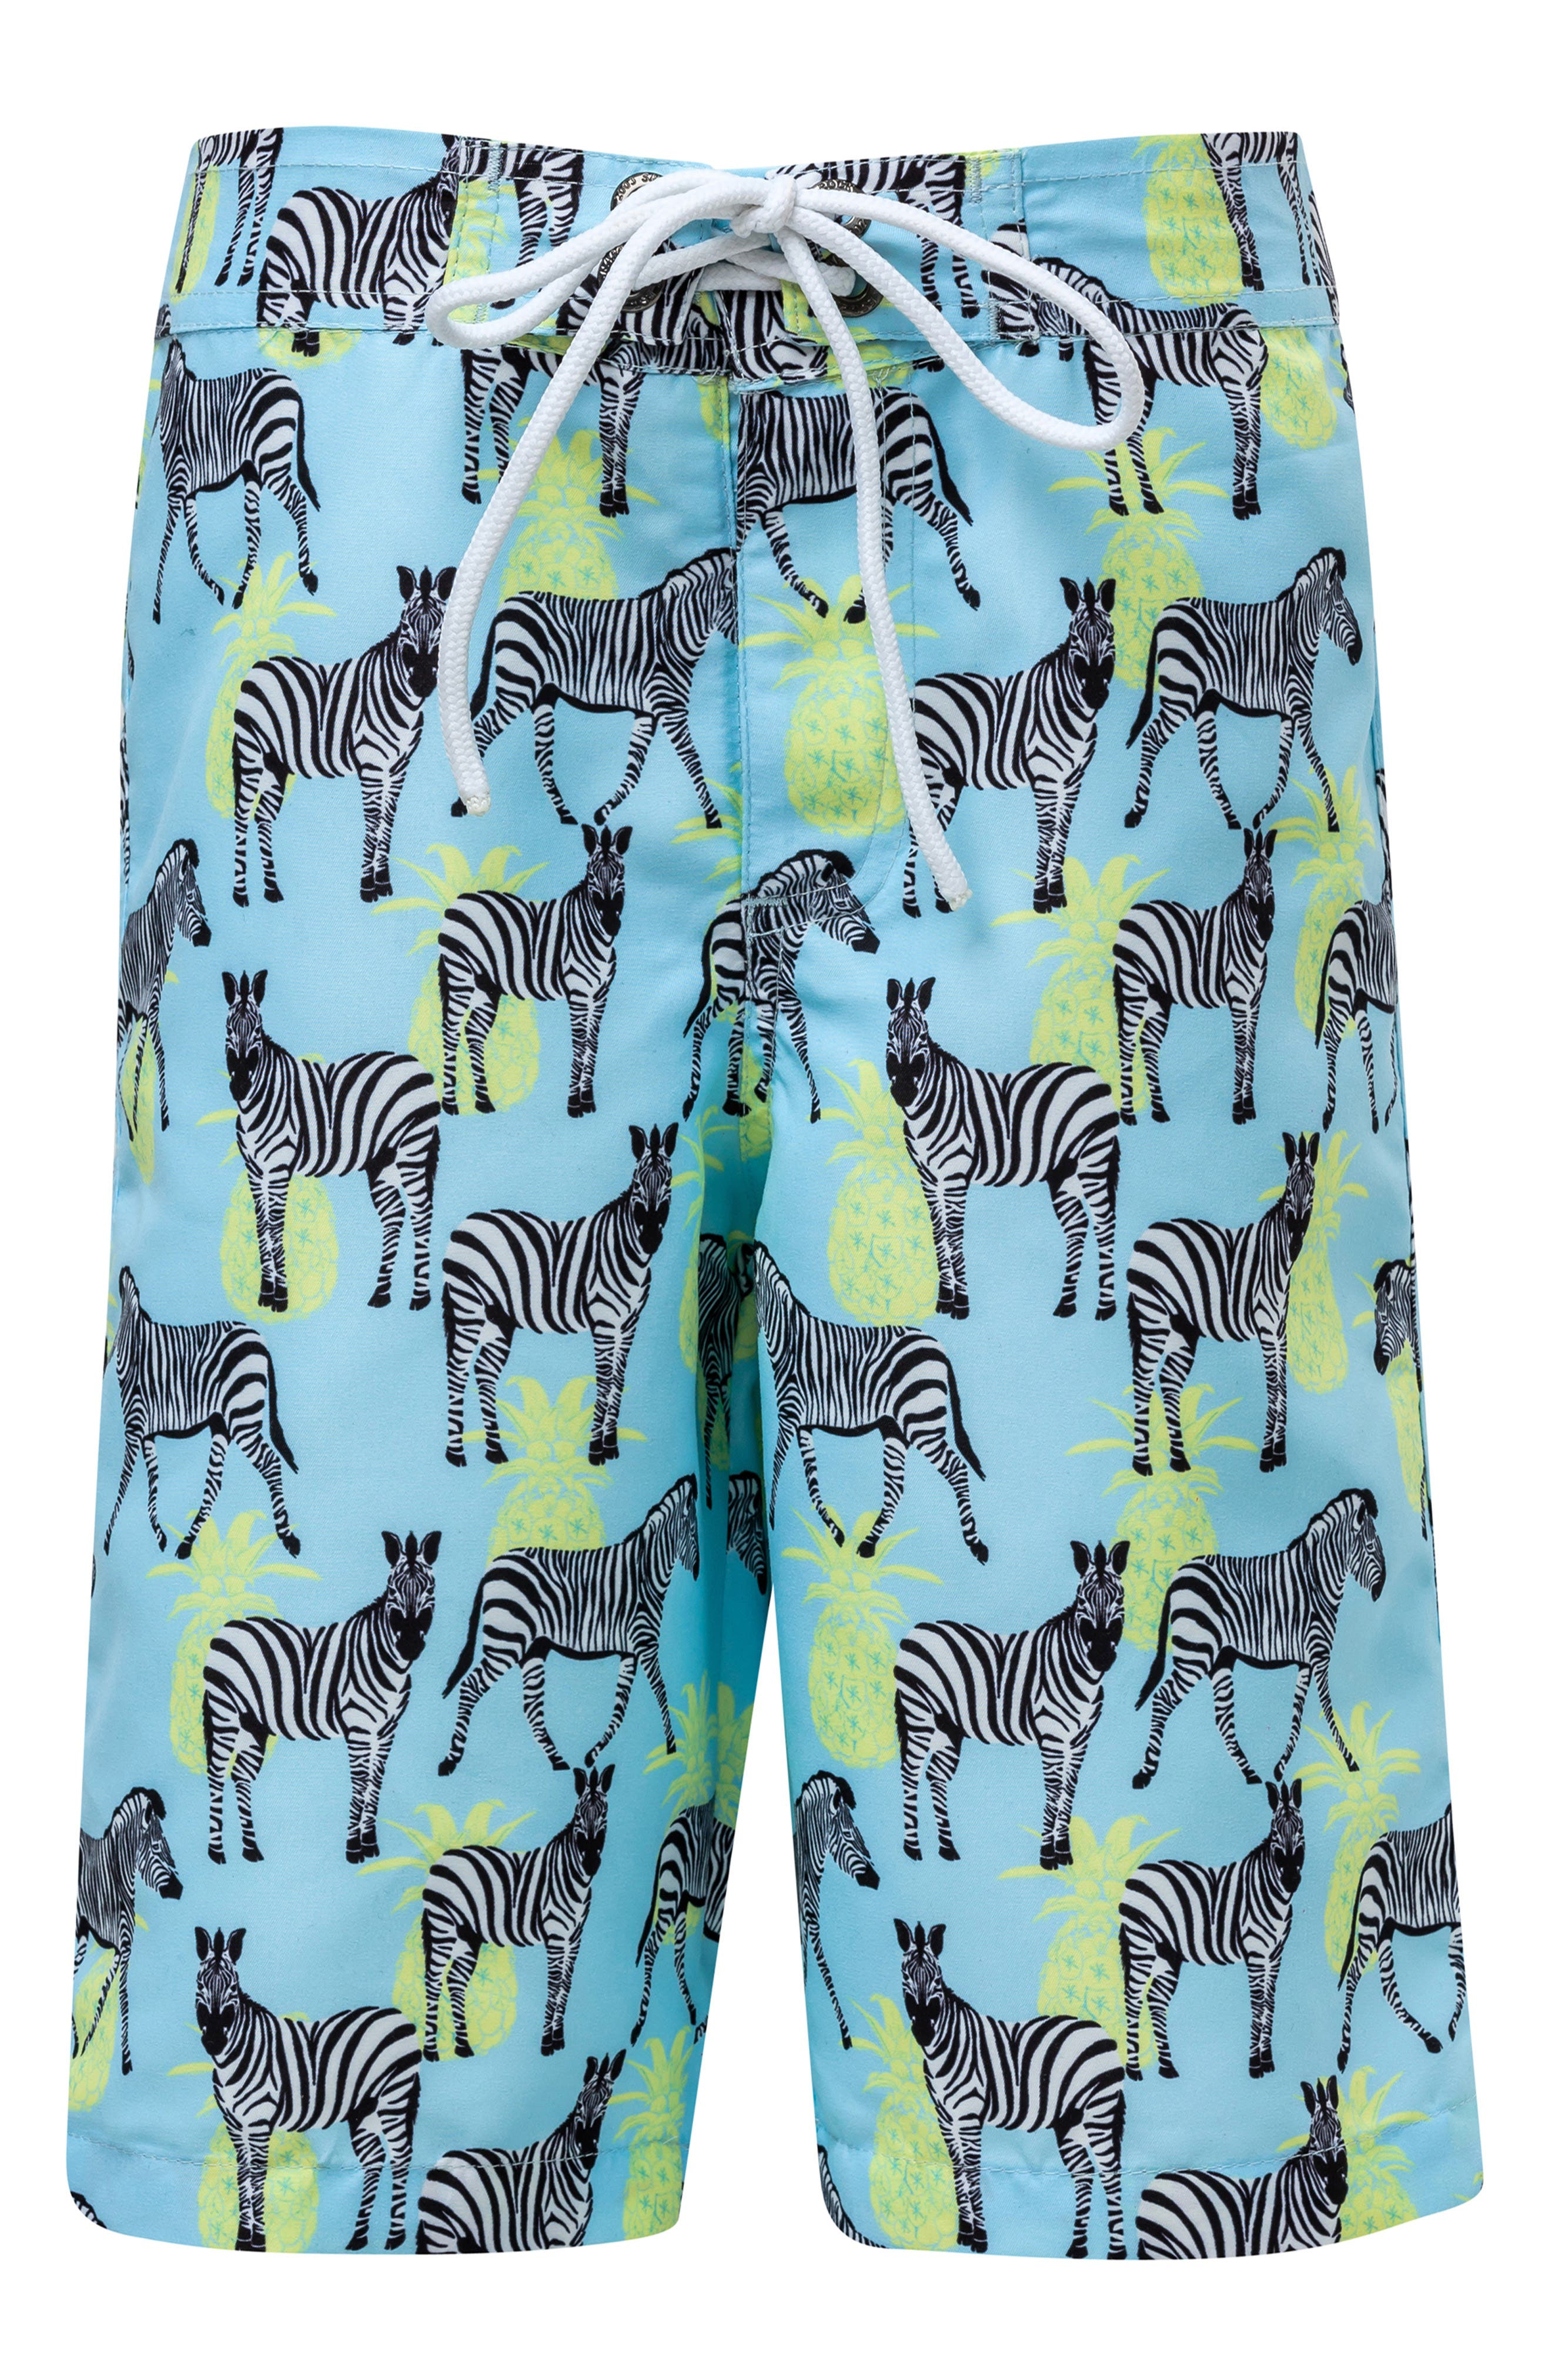 SNAPPER ROCK Zebra Crossing True Board Shorts, Main, color, BLUE